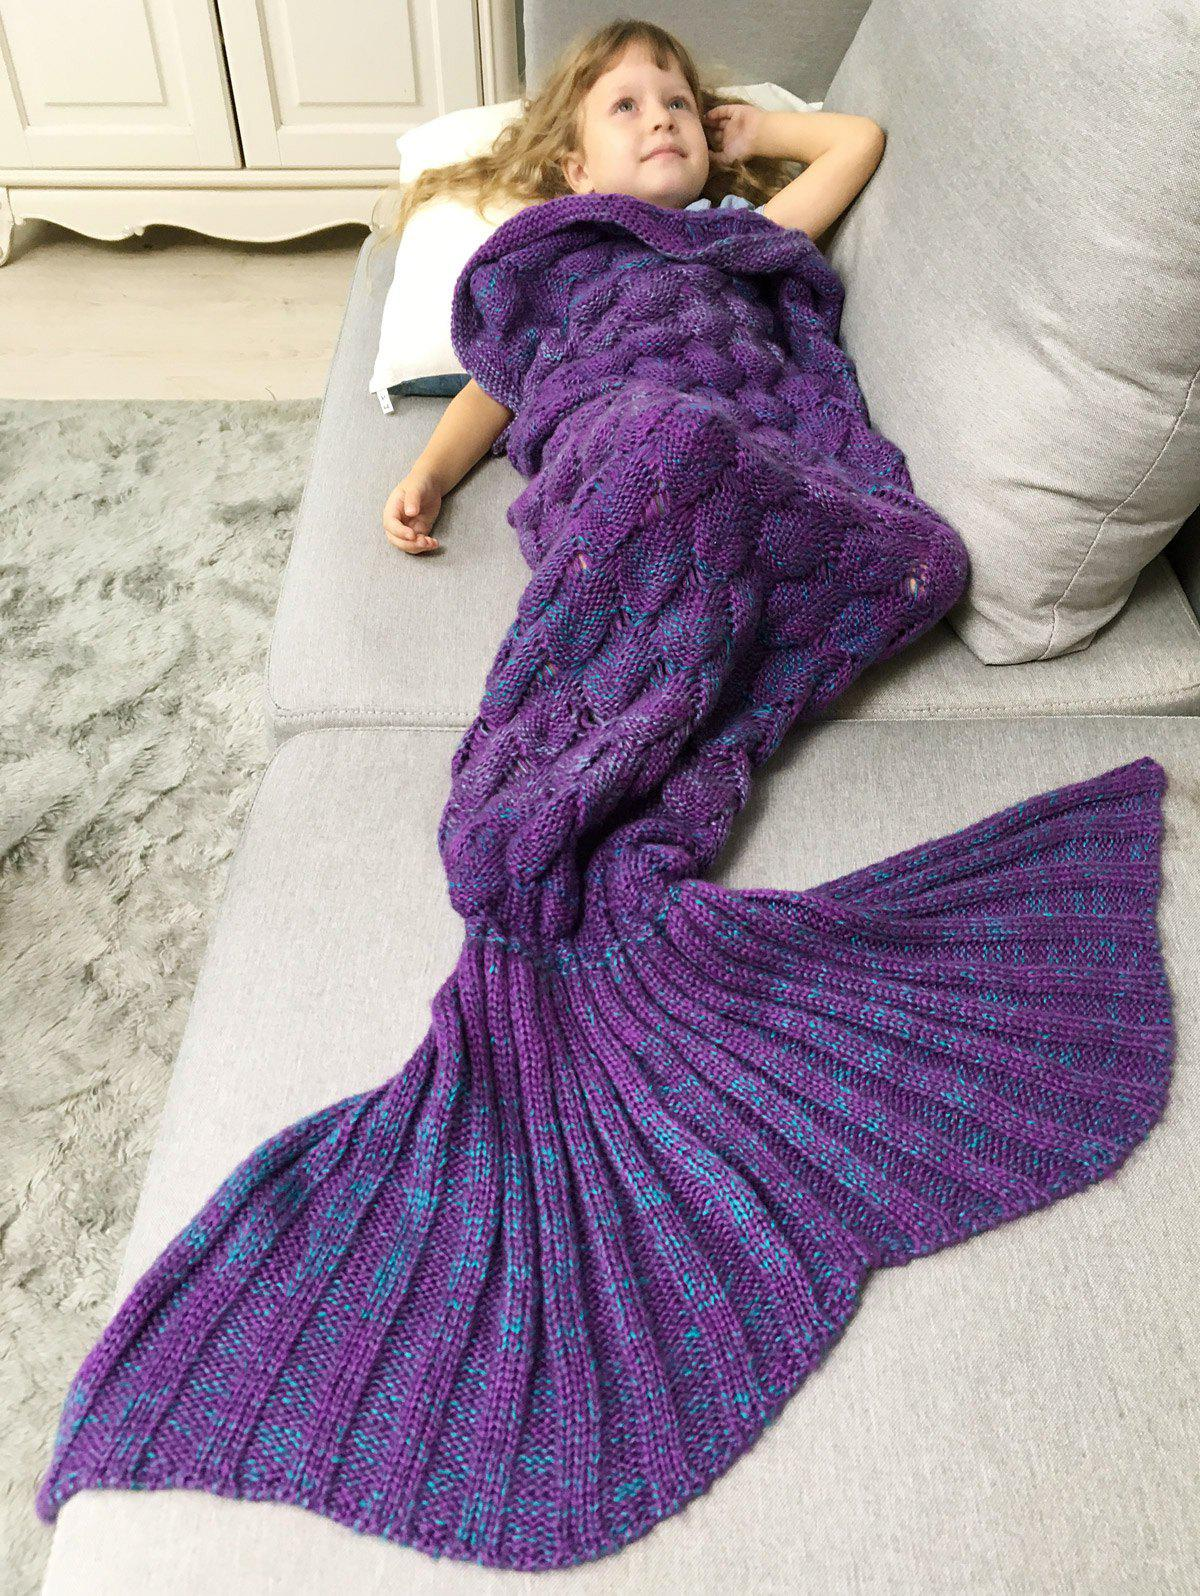 Crochet Knit Chunky Mermaid Blanket Throw For KidsHOME<br><br>Color: PURPLE; Type: Knitted; Material: Acrylic; Pattern Type: Solid; Size(L*W)(CM): 140*90CM; Weight: 0.720kg; Package Contents: 1 x Blanket Throw;